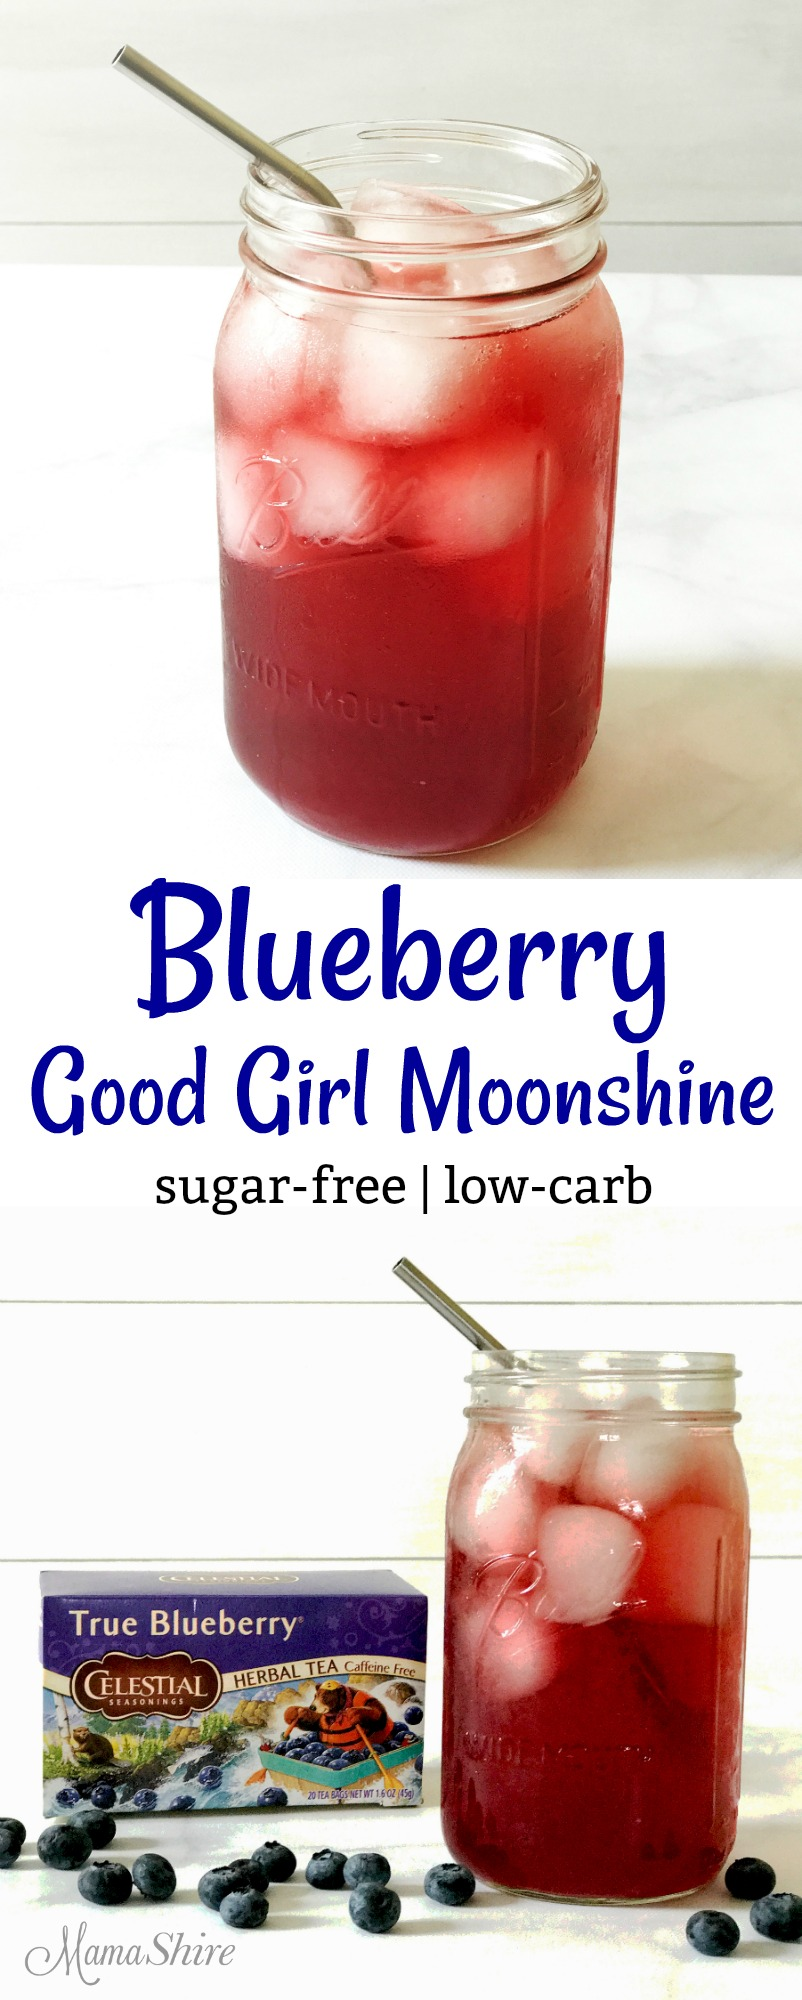 Blueberry Good Girl Moonshine - Sugar-free, Low-carb, All Day THM Sipper